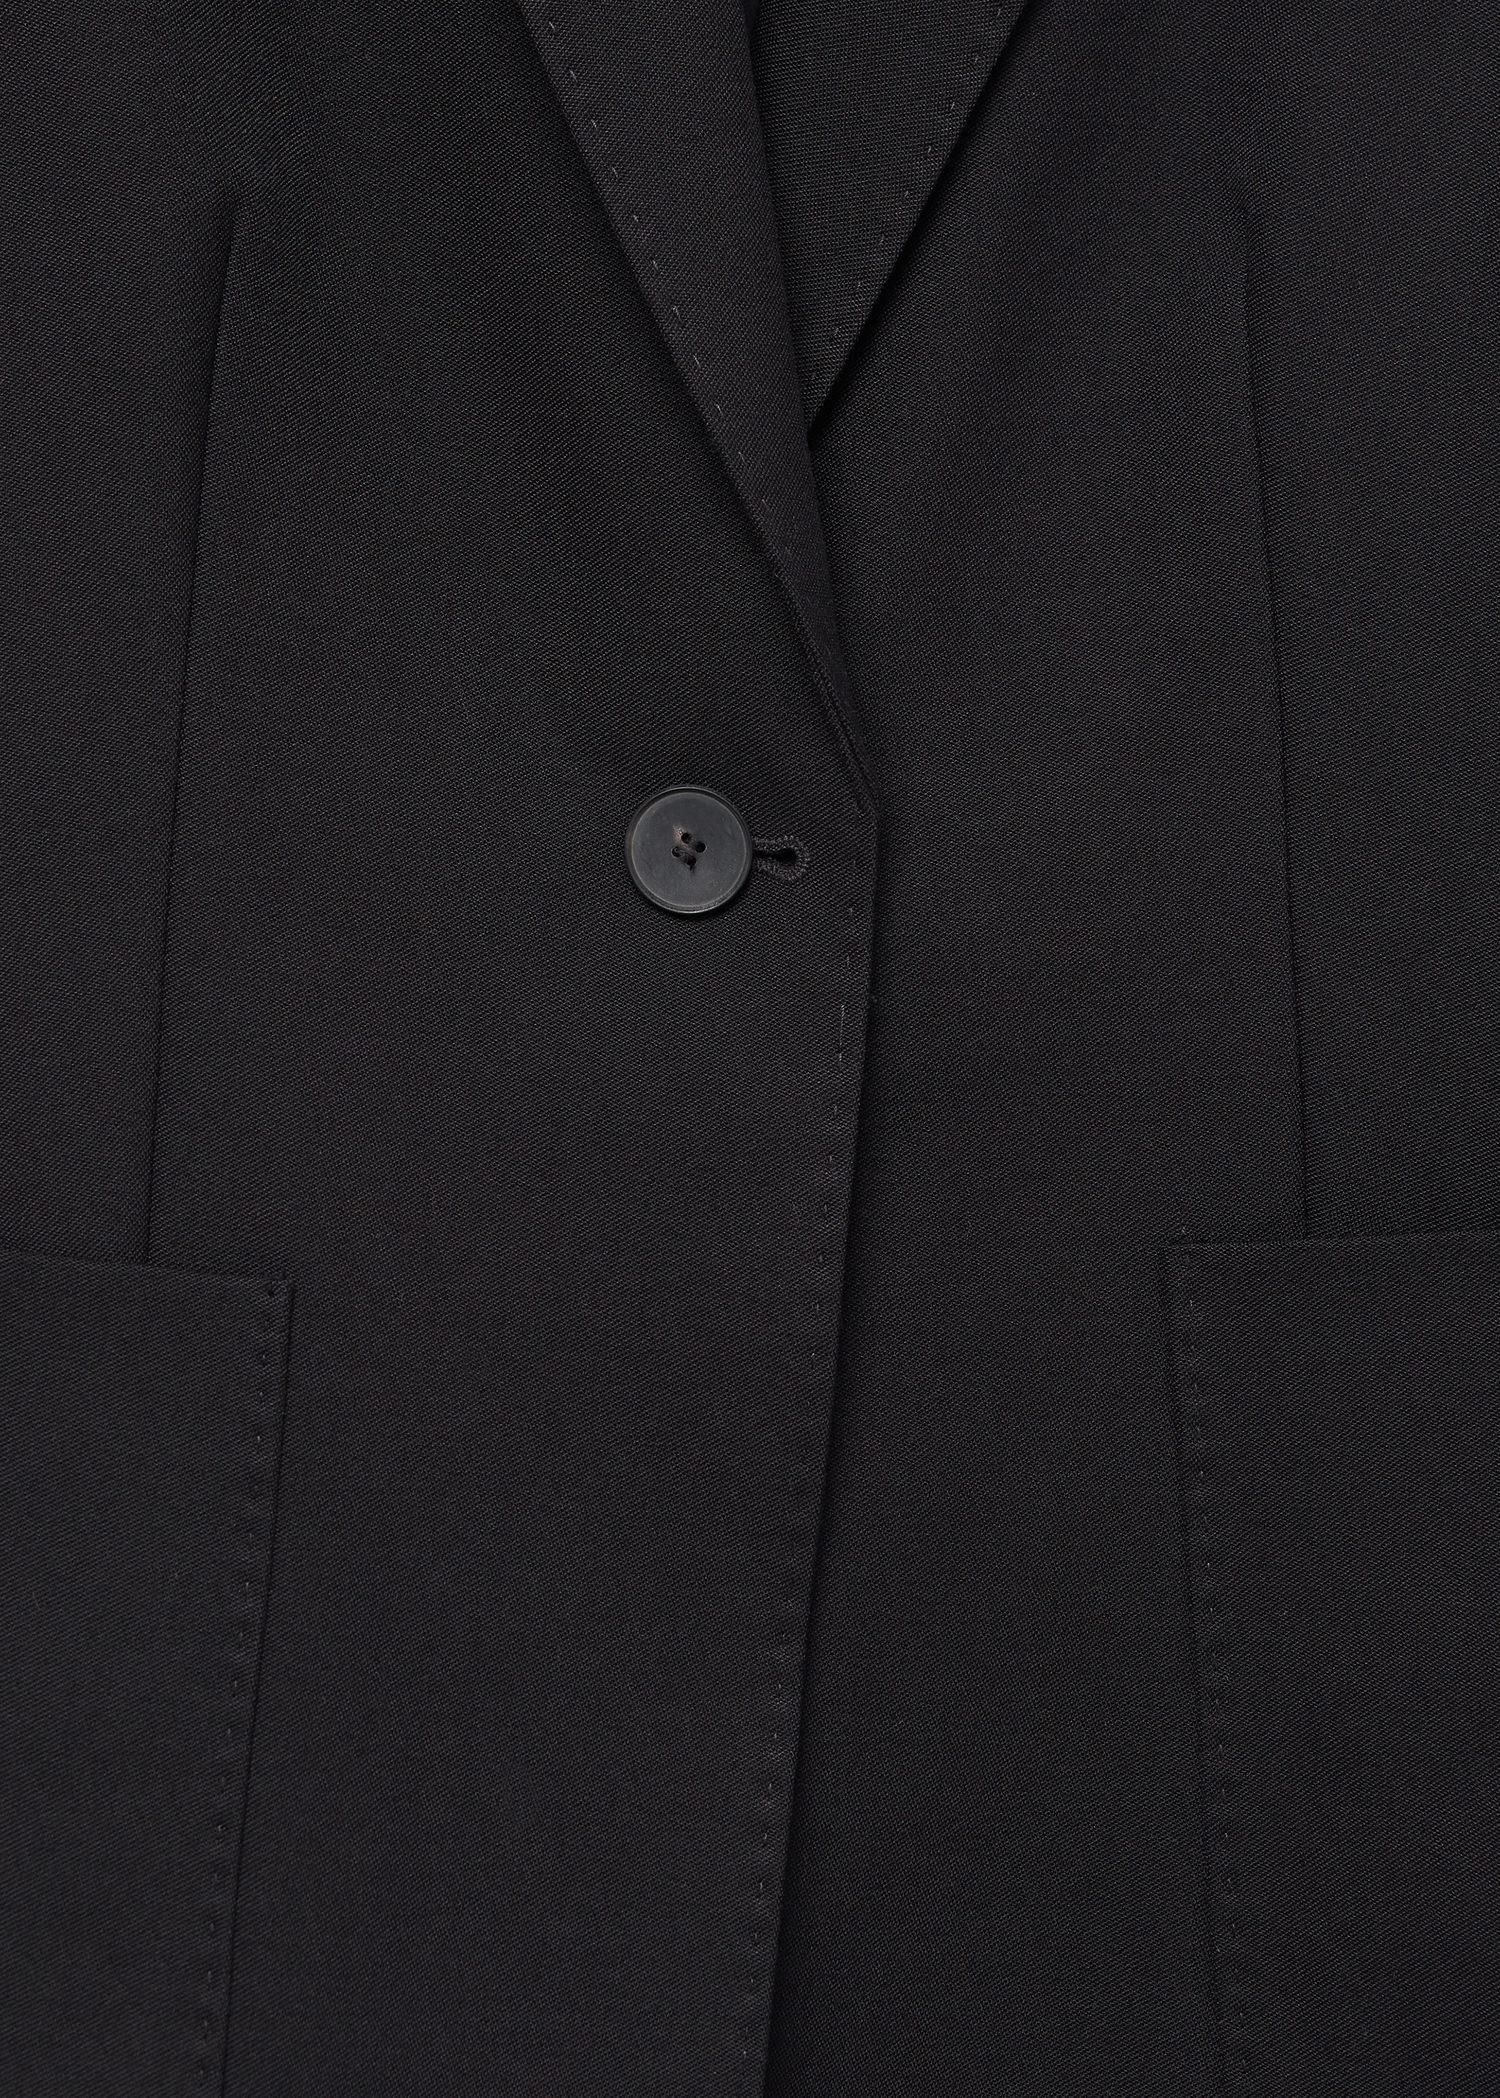 Fitted blazer with pocket 7